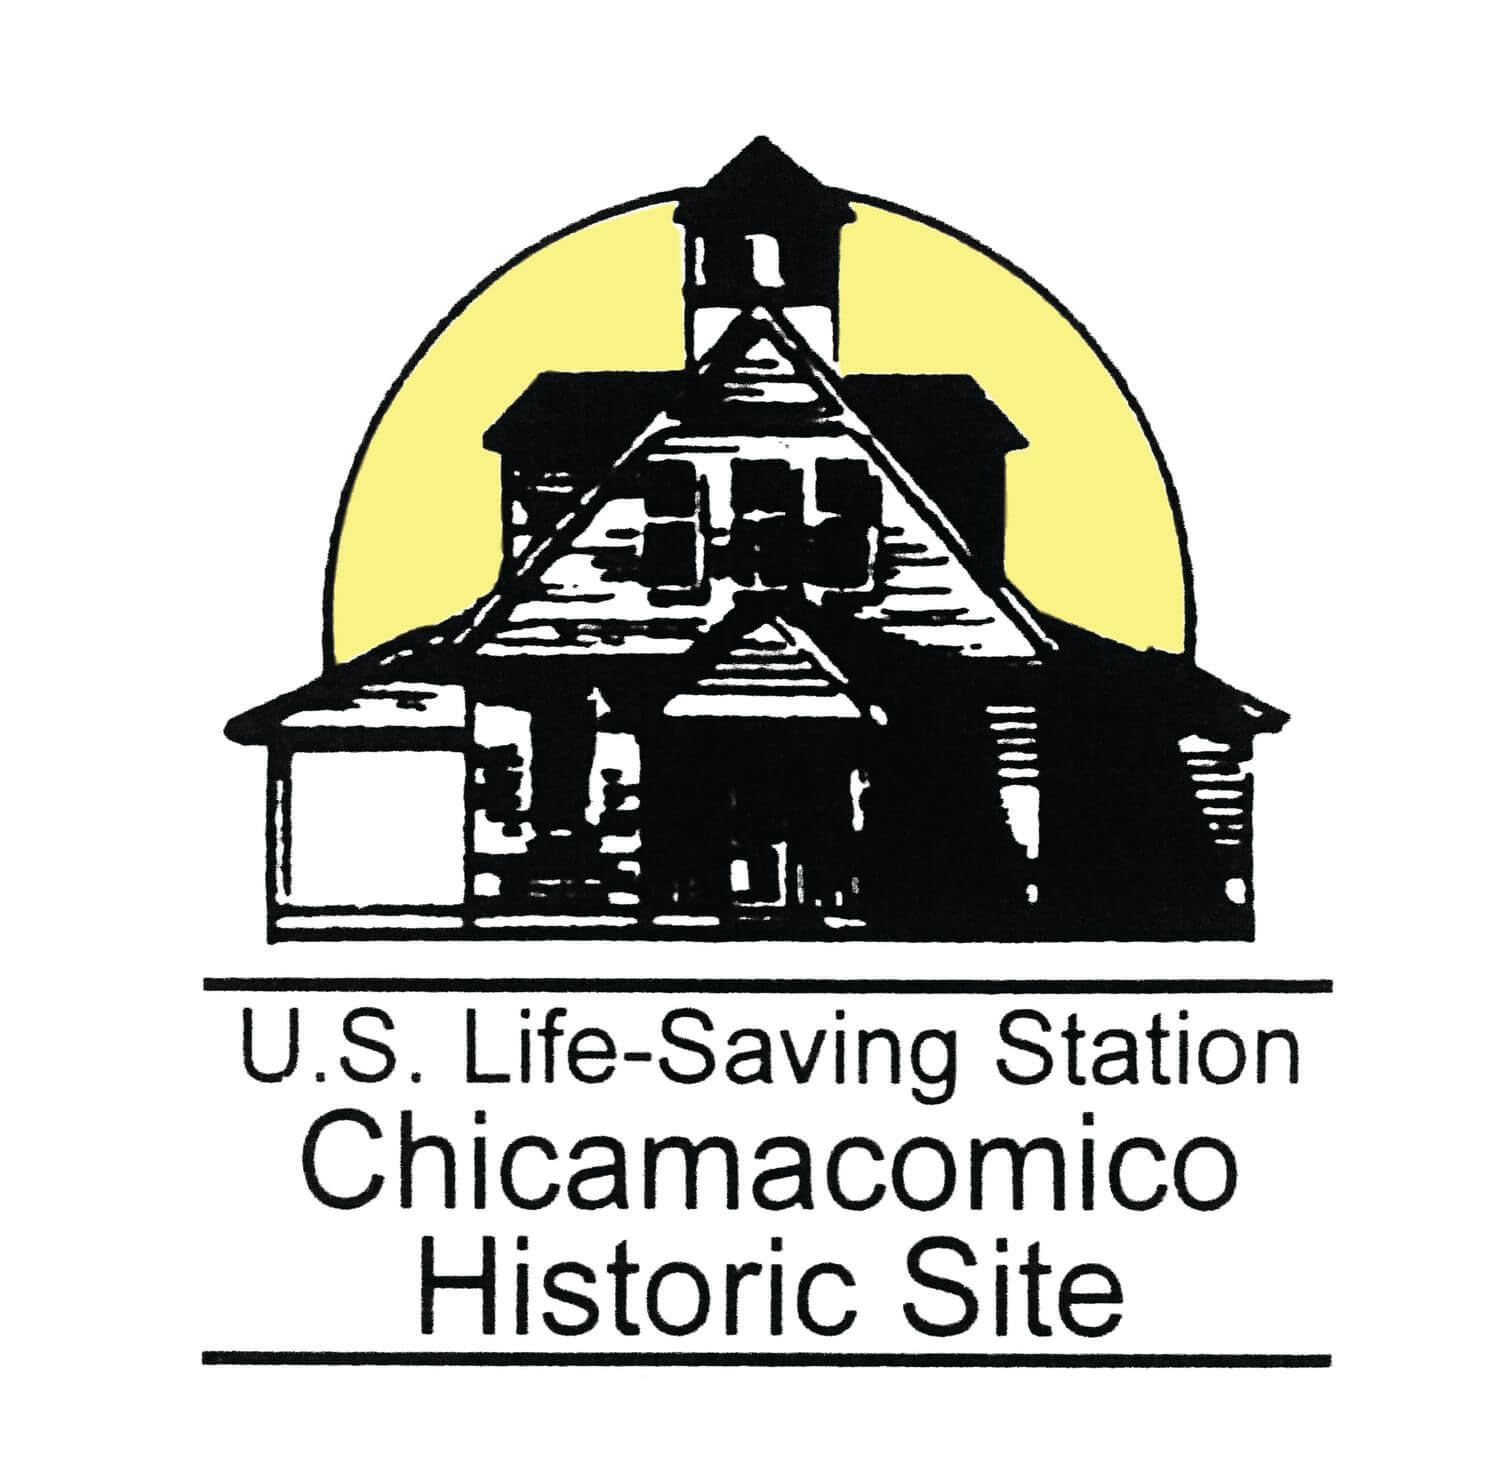 Chicamacomico logo color